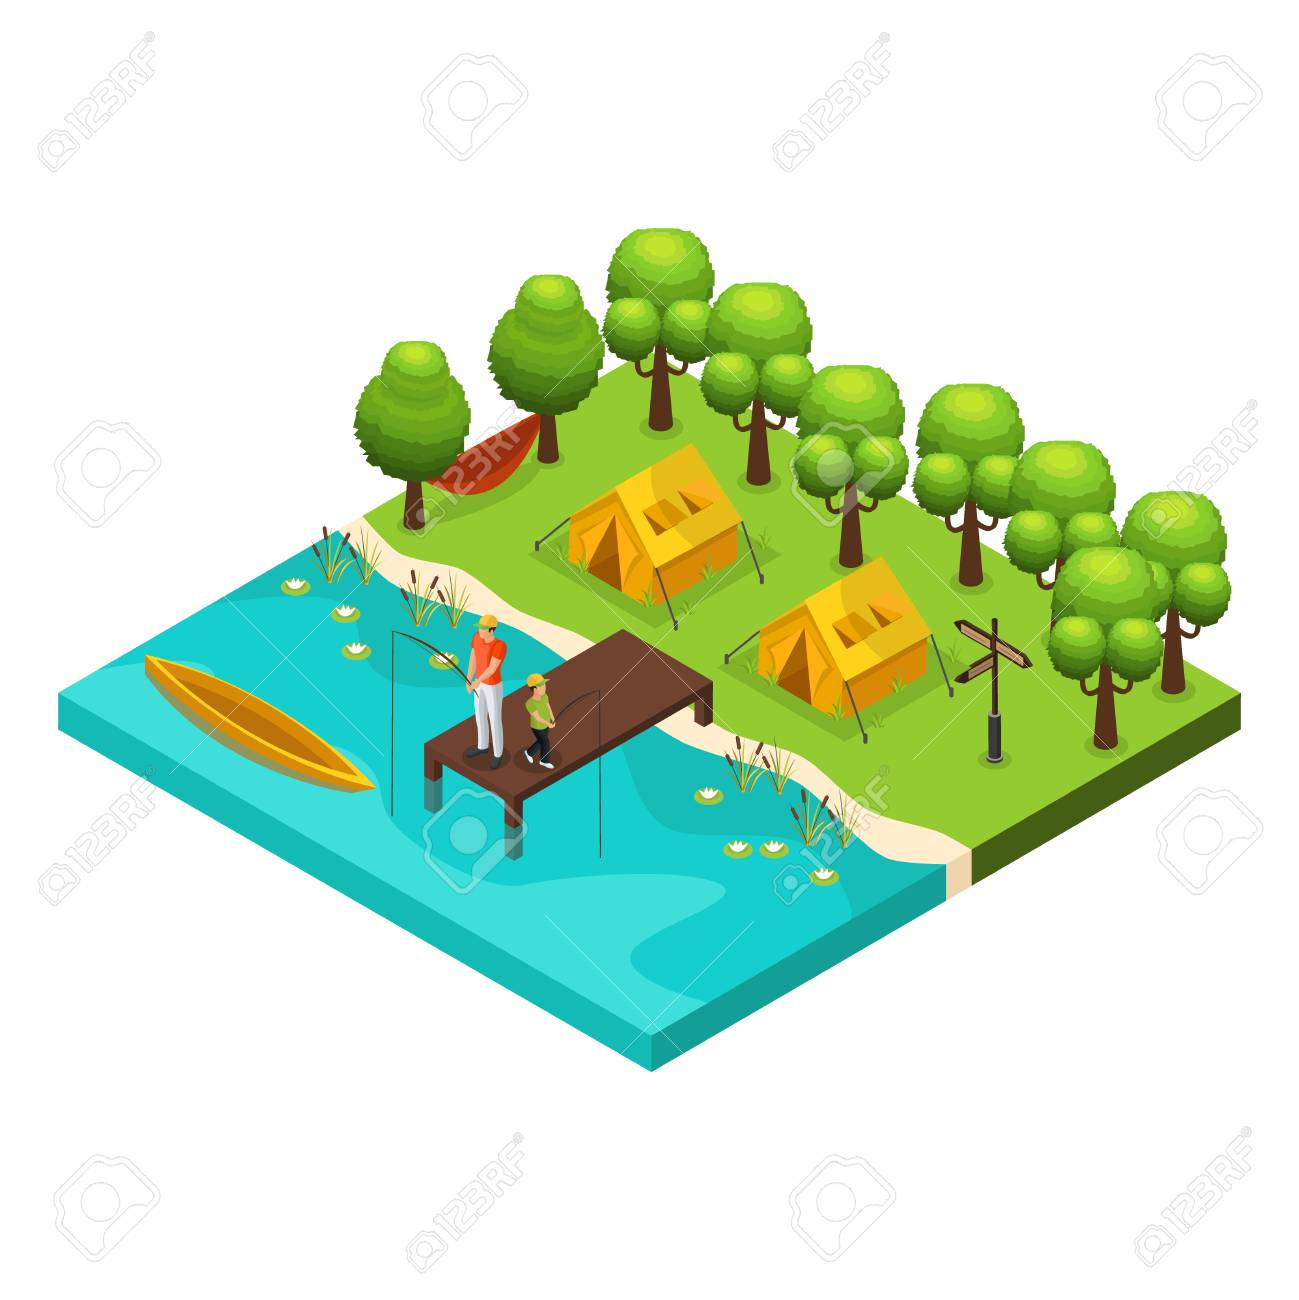 Isometric weekend recreation concept with father and son fishing together on lake isolated vector illustration - 102340114